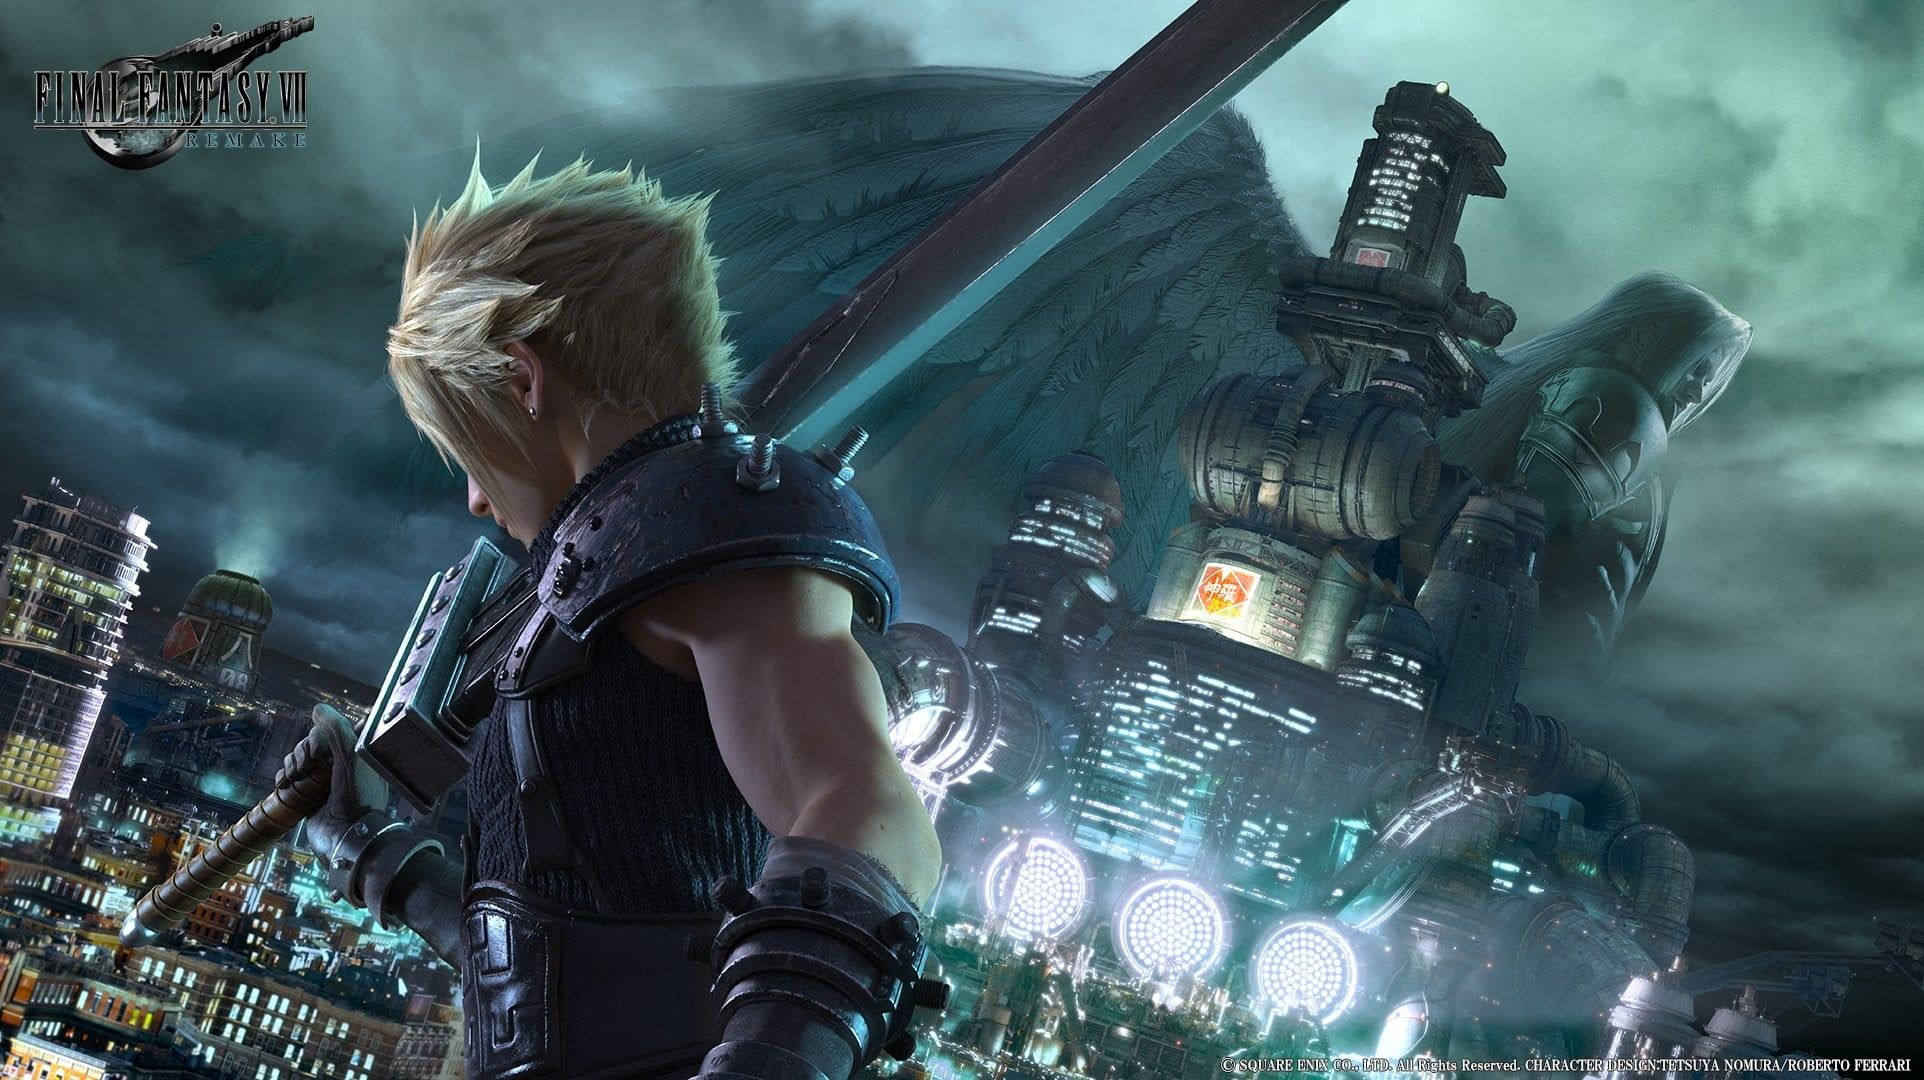 Final Fantasy Vii Cloud Strife Video Games Midgar Shinra